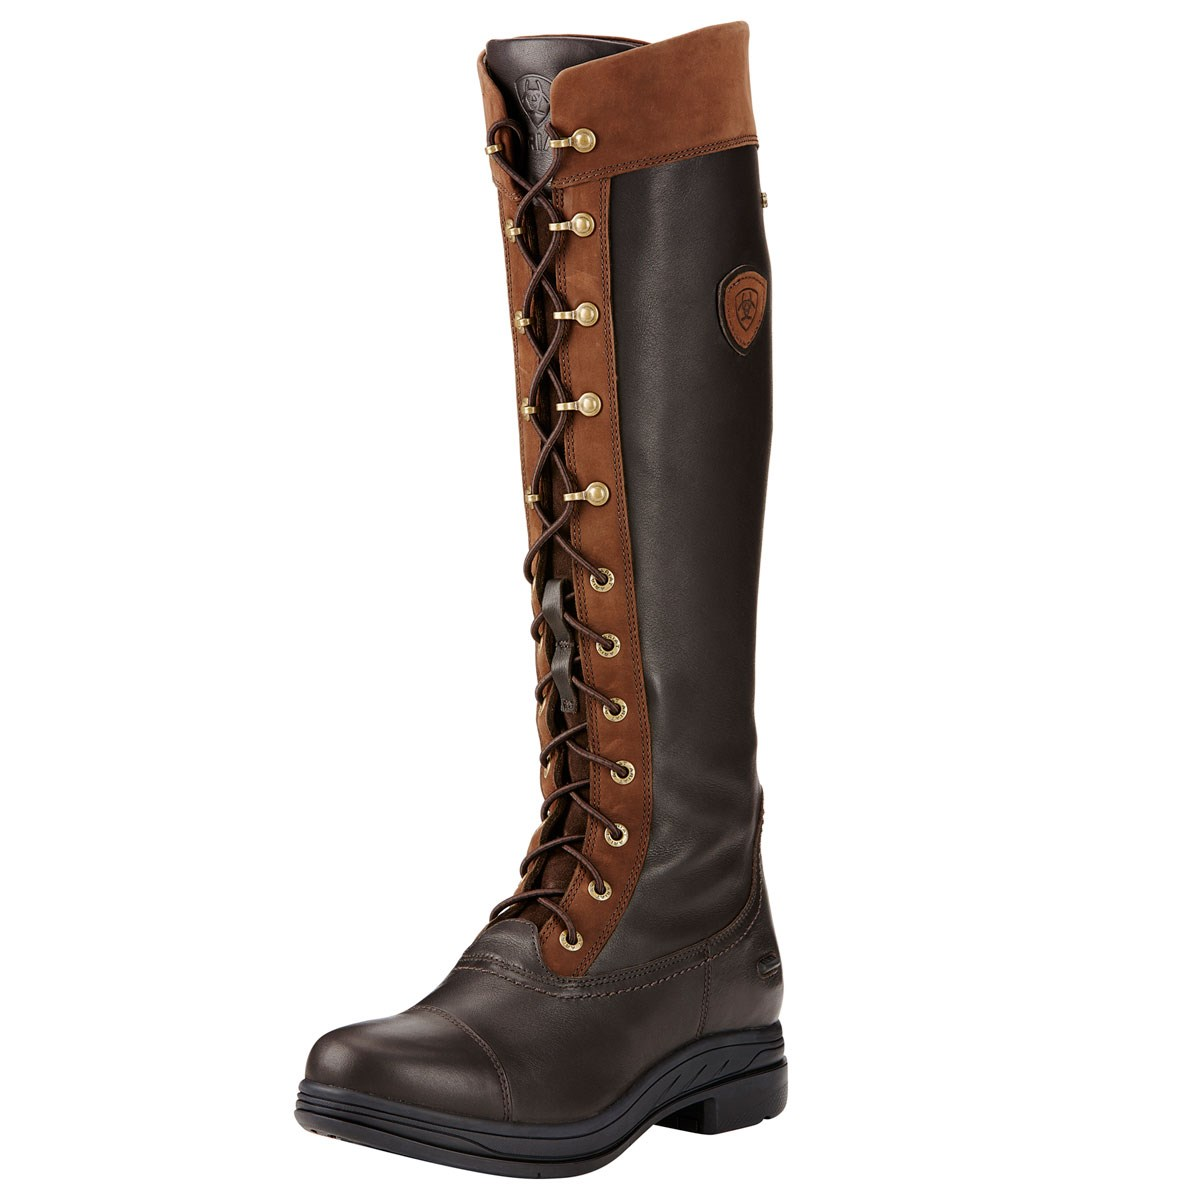 Ariat Coniston Pro GTX Insulated Womens Tall Country Boot - Ebony ...